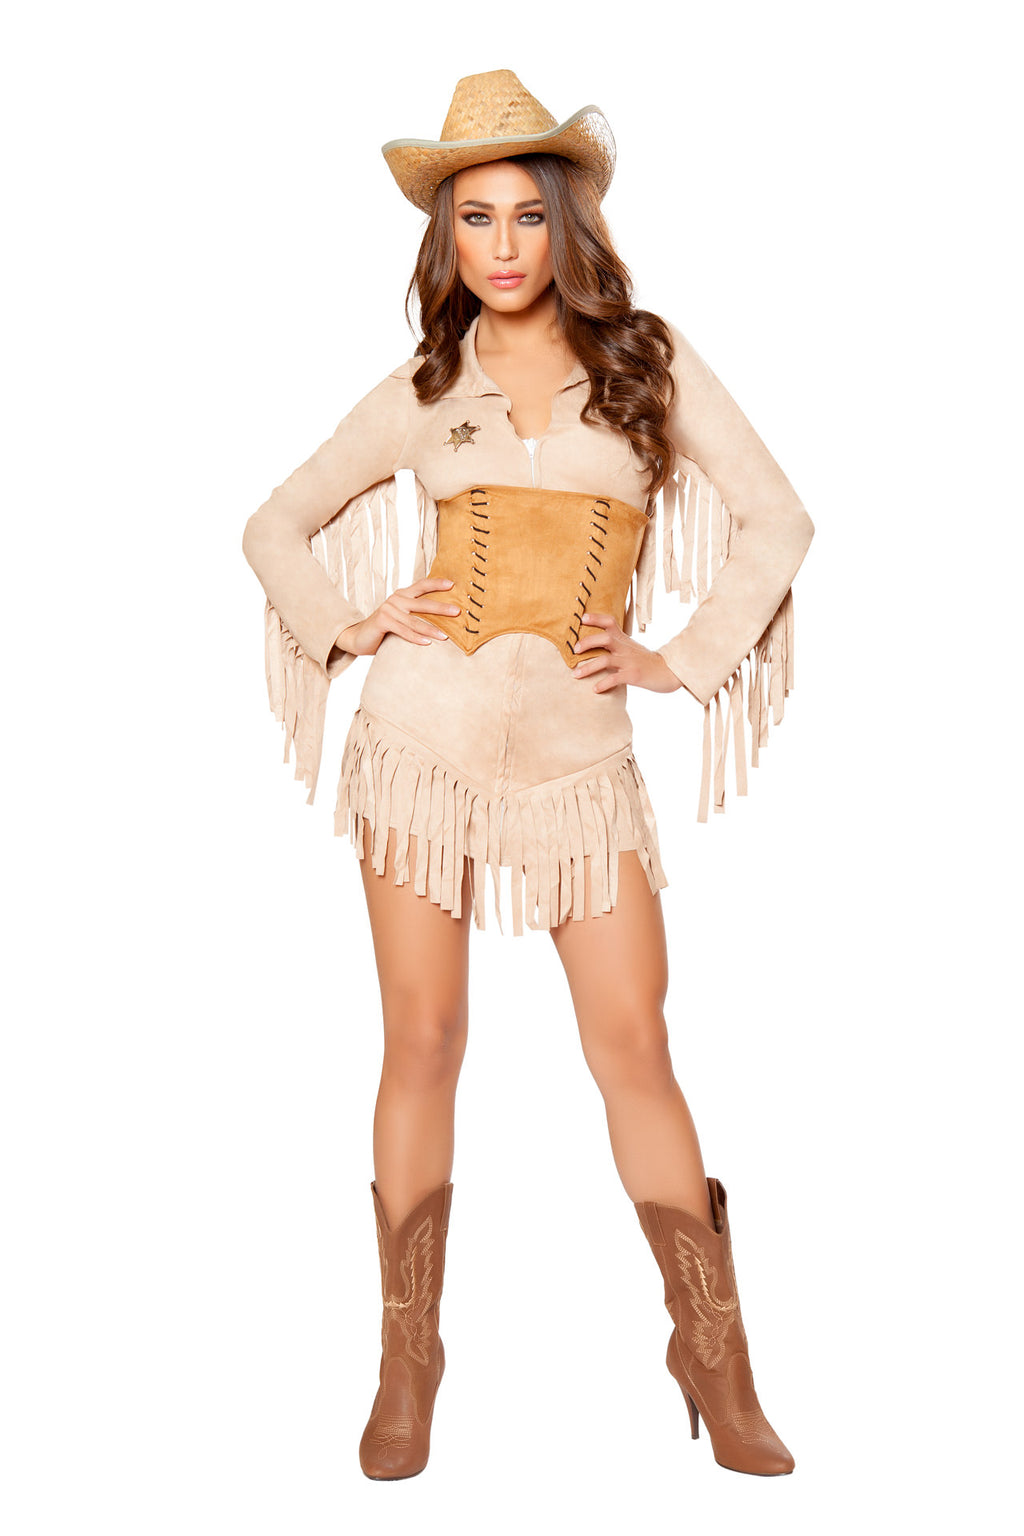 3-PC-Sheriff-Cowgirl-Tan-Fringe-Suede-Cincher-Dress-w/-Badge-Party-Costume